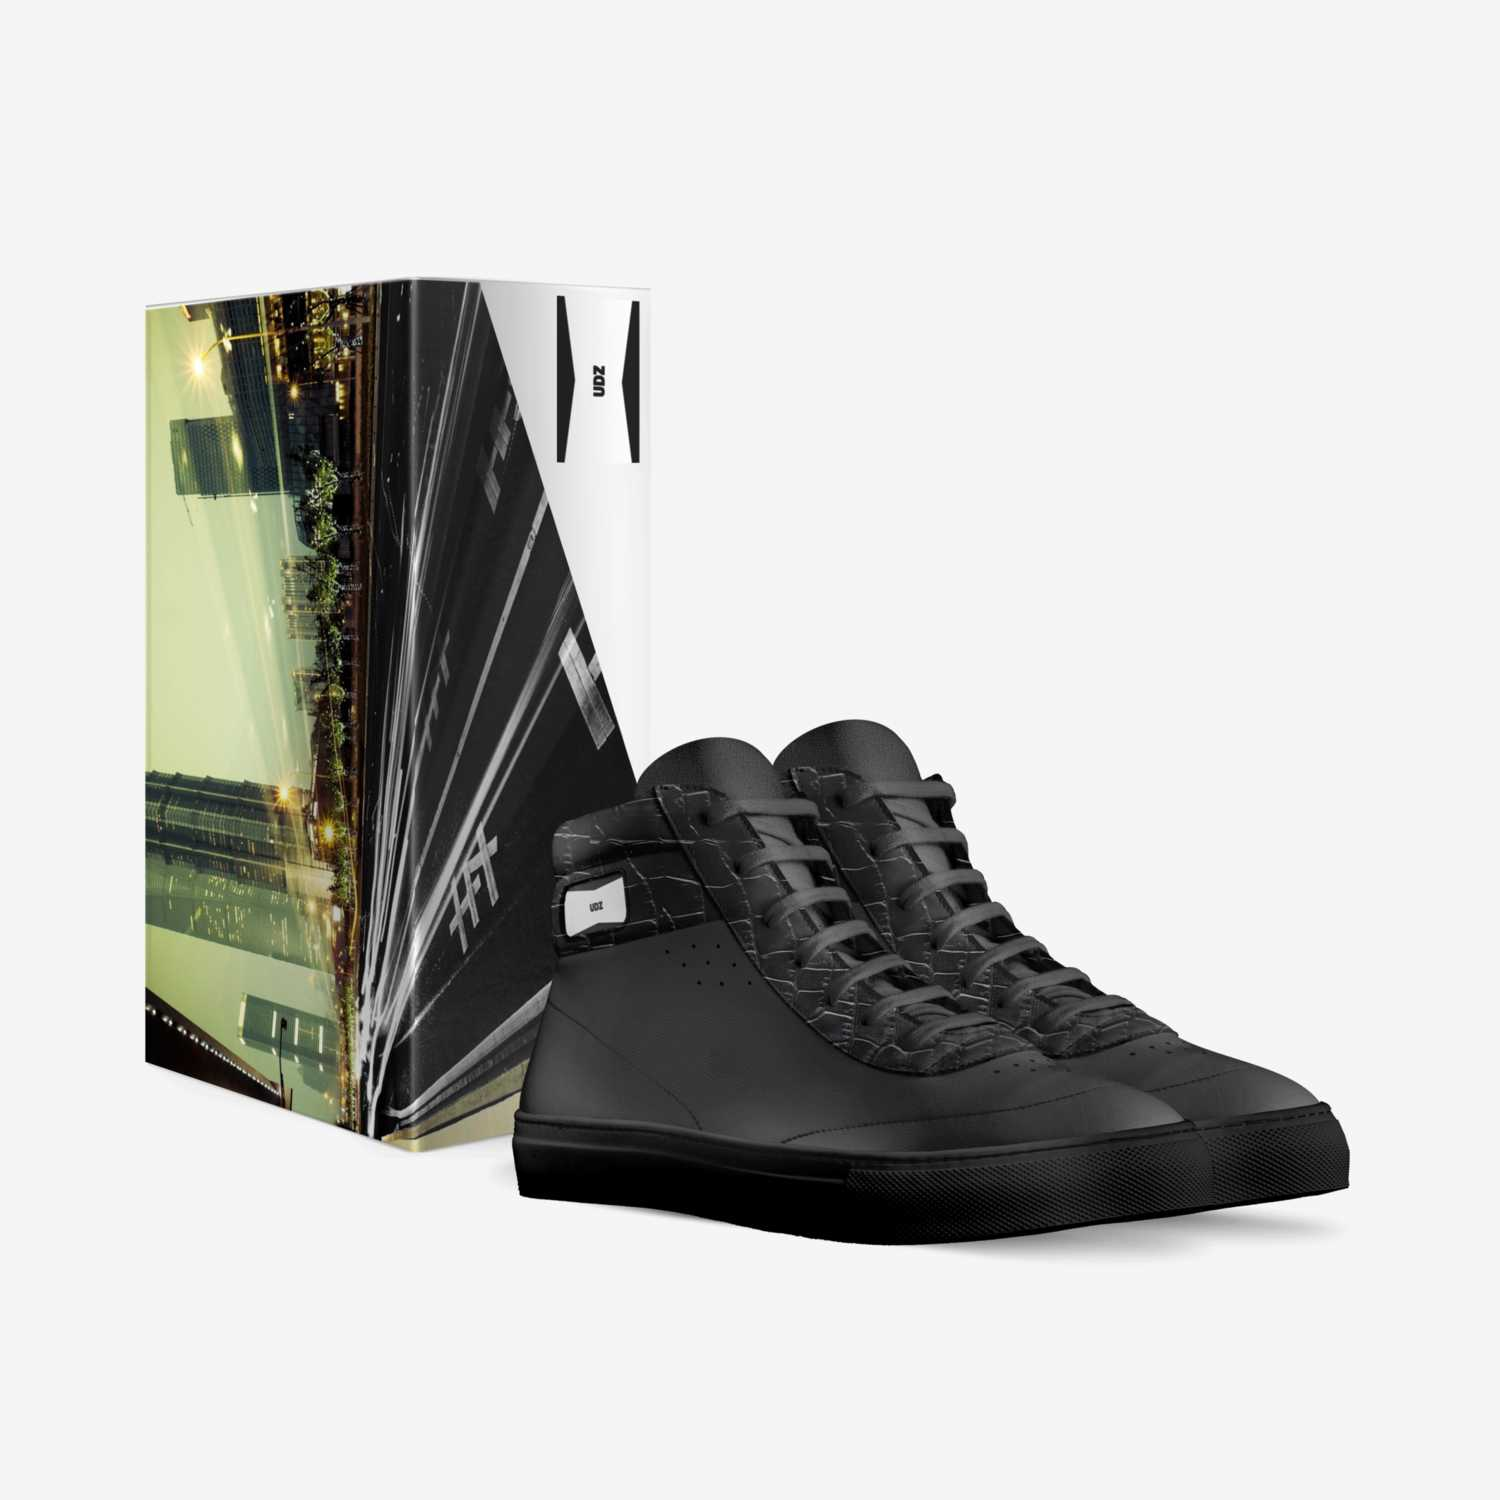 UDZ custom made in Italy shoes by Henry Kelly   Box view